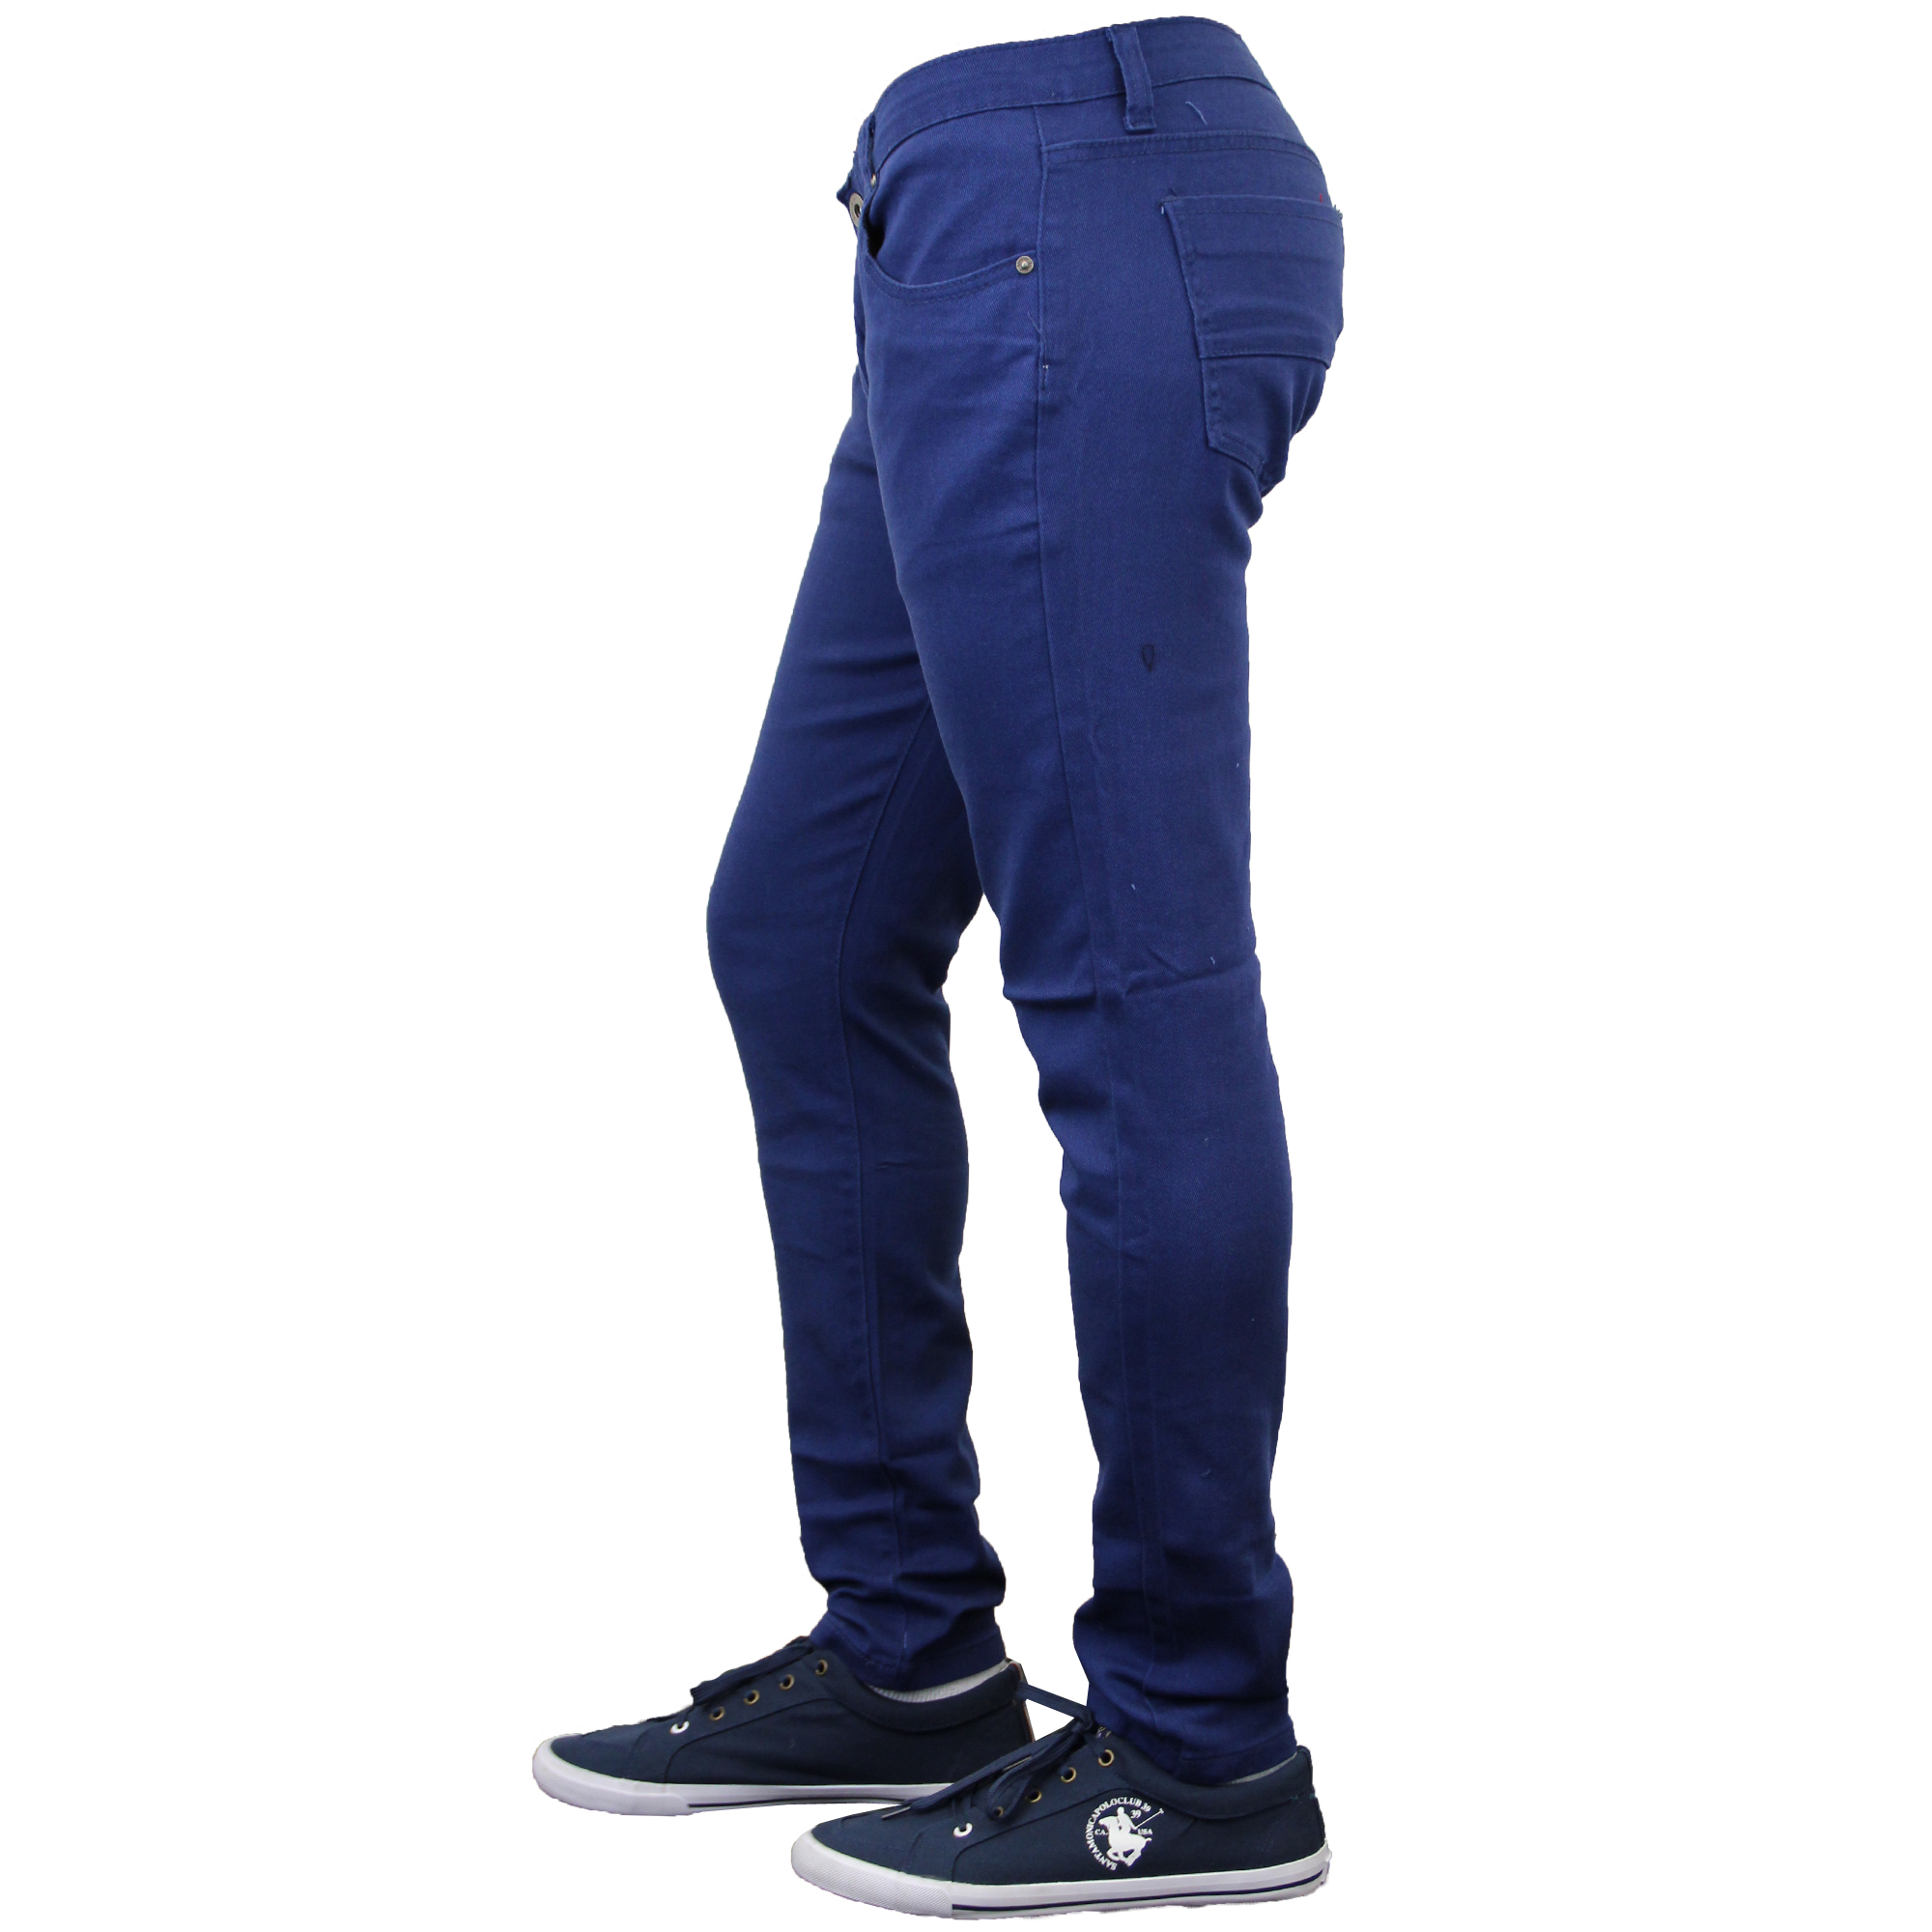 Mens-Skinny-Jeans-Soul-Star-Slim-Fit-Stretch-Denim-Pants-Trousers-Tapered-New